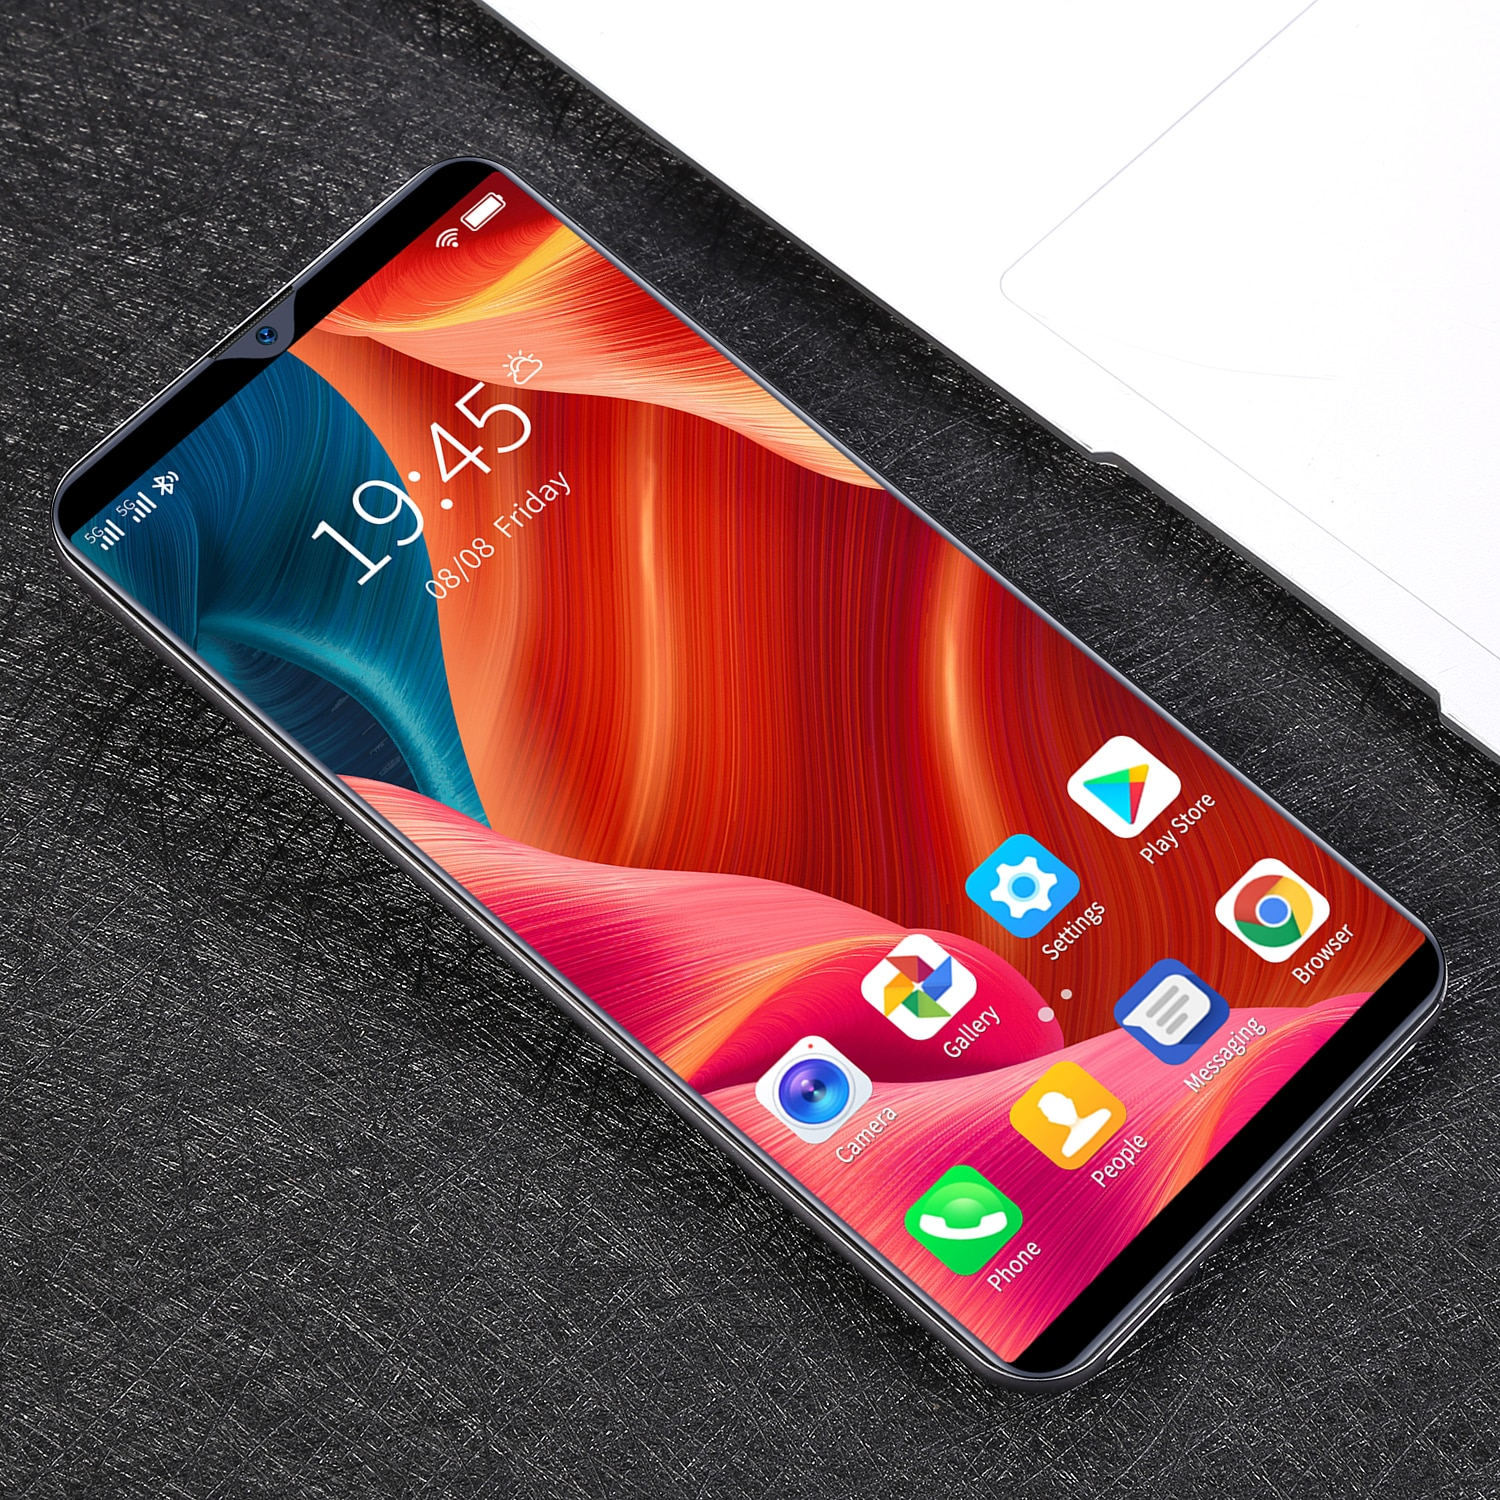 X50Pro+【New Arrival】Smartphone 6.3 Inch Full Screen HD Camera Large Memory RAM 1GB+ROM 8GB Android Mobile cellPhone Celulares